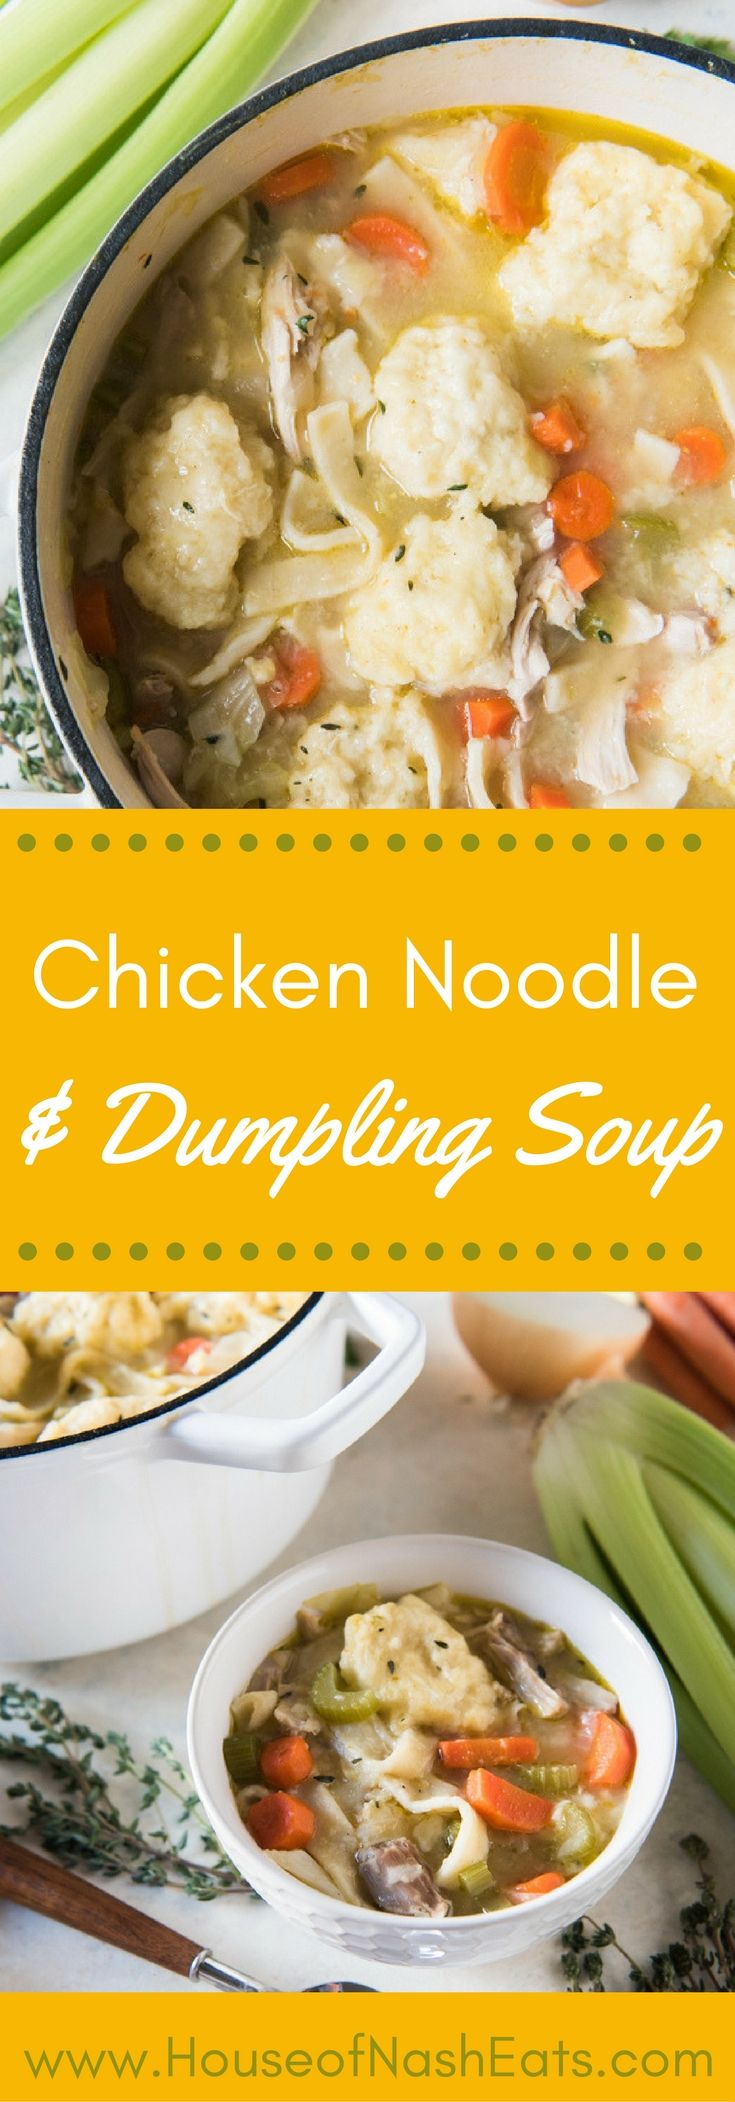 My favorite soup from my childhood, Chicken Noodle & Dumpling Soup, is made with homemade egg noodles, super easy dumplings from scratch, and loaded with shredded chicken, carrots, cabbage, celery, and onions!  It's comfort food at it's best!